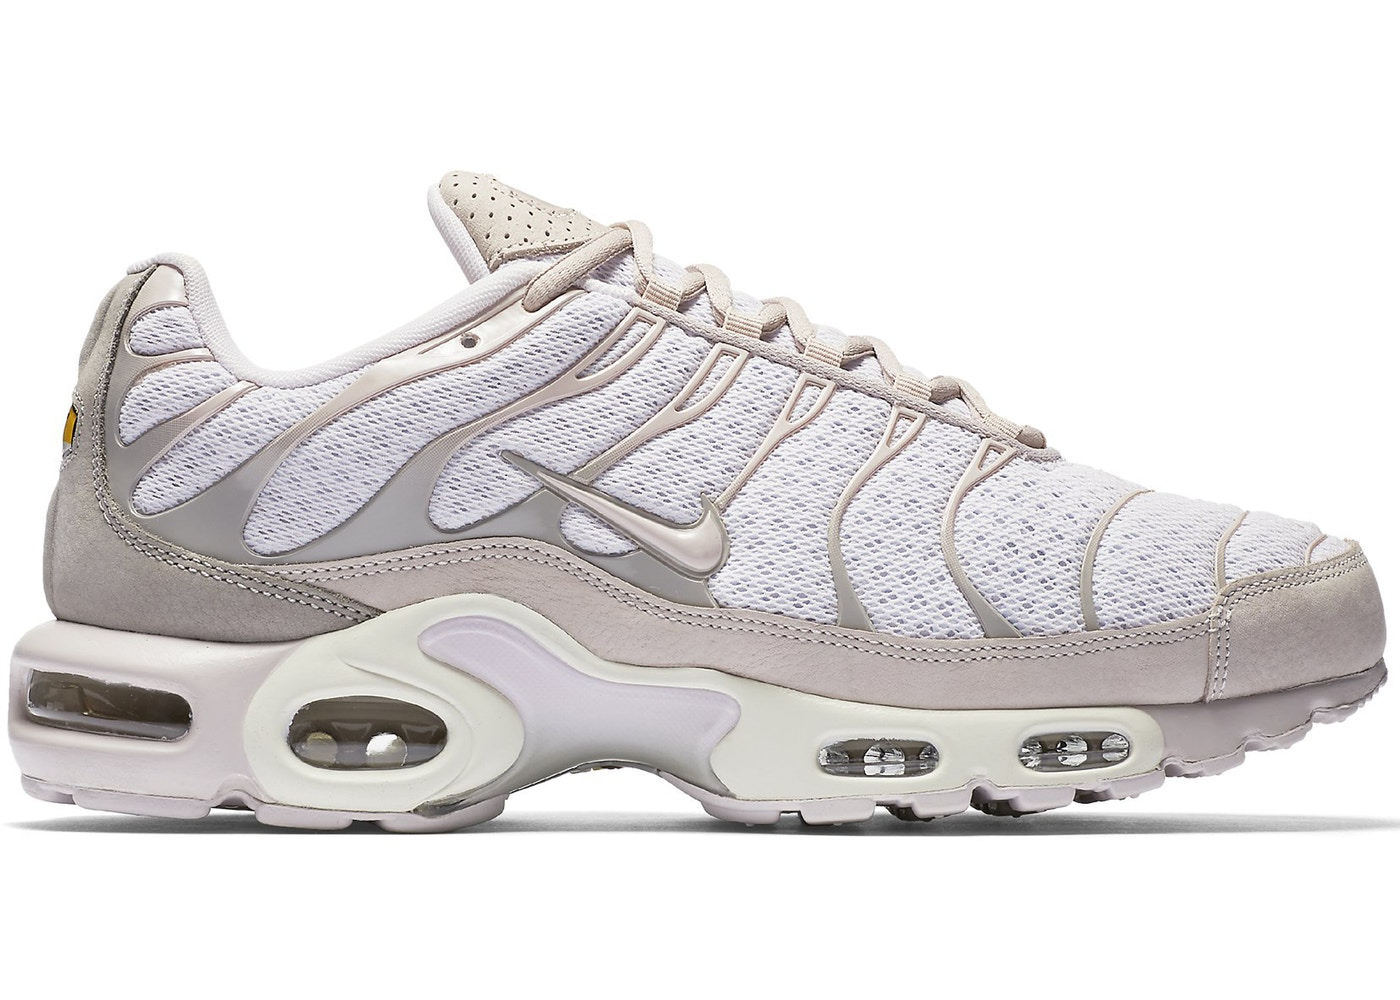 Nike Air Max Plus Tn Ultra White Pink Obsidian Movemear Fitness Women's Shoes NIKE CIU016963